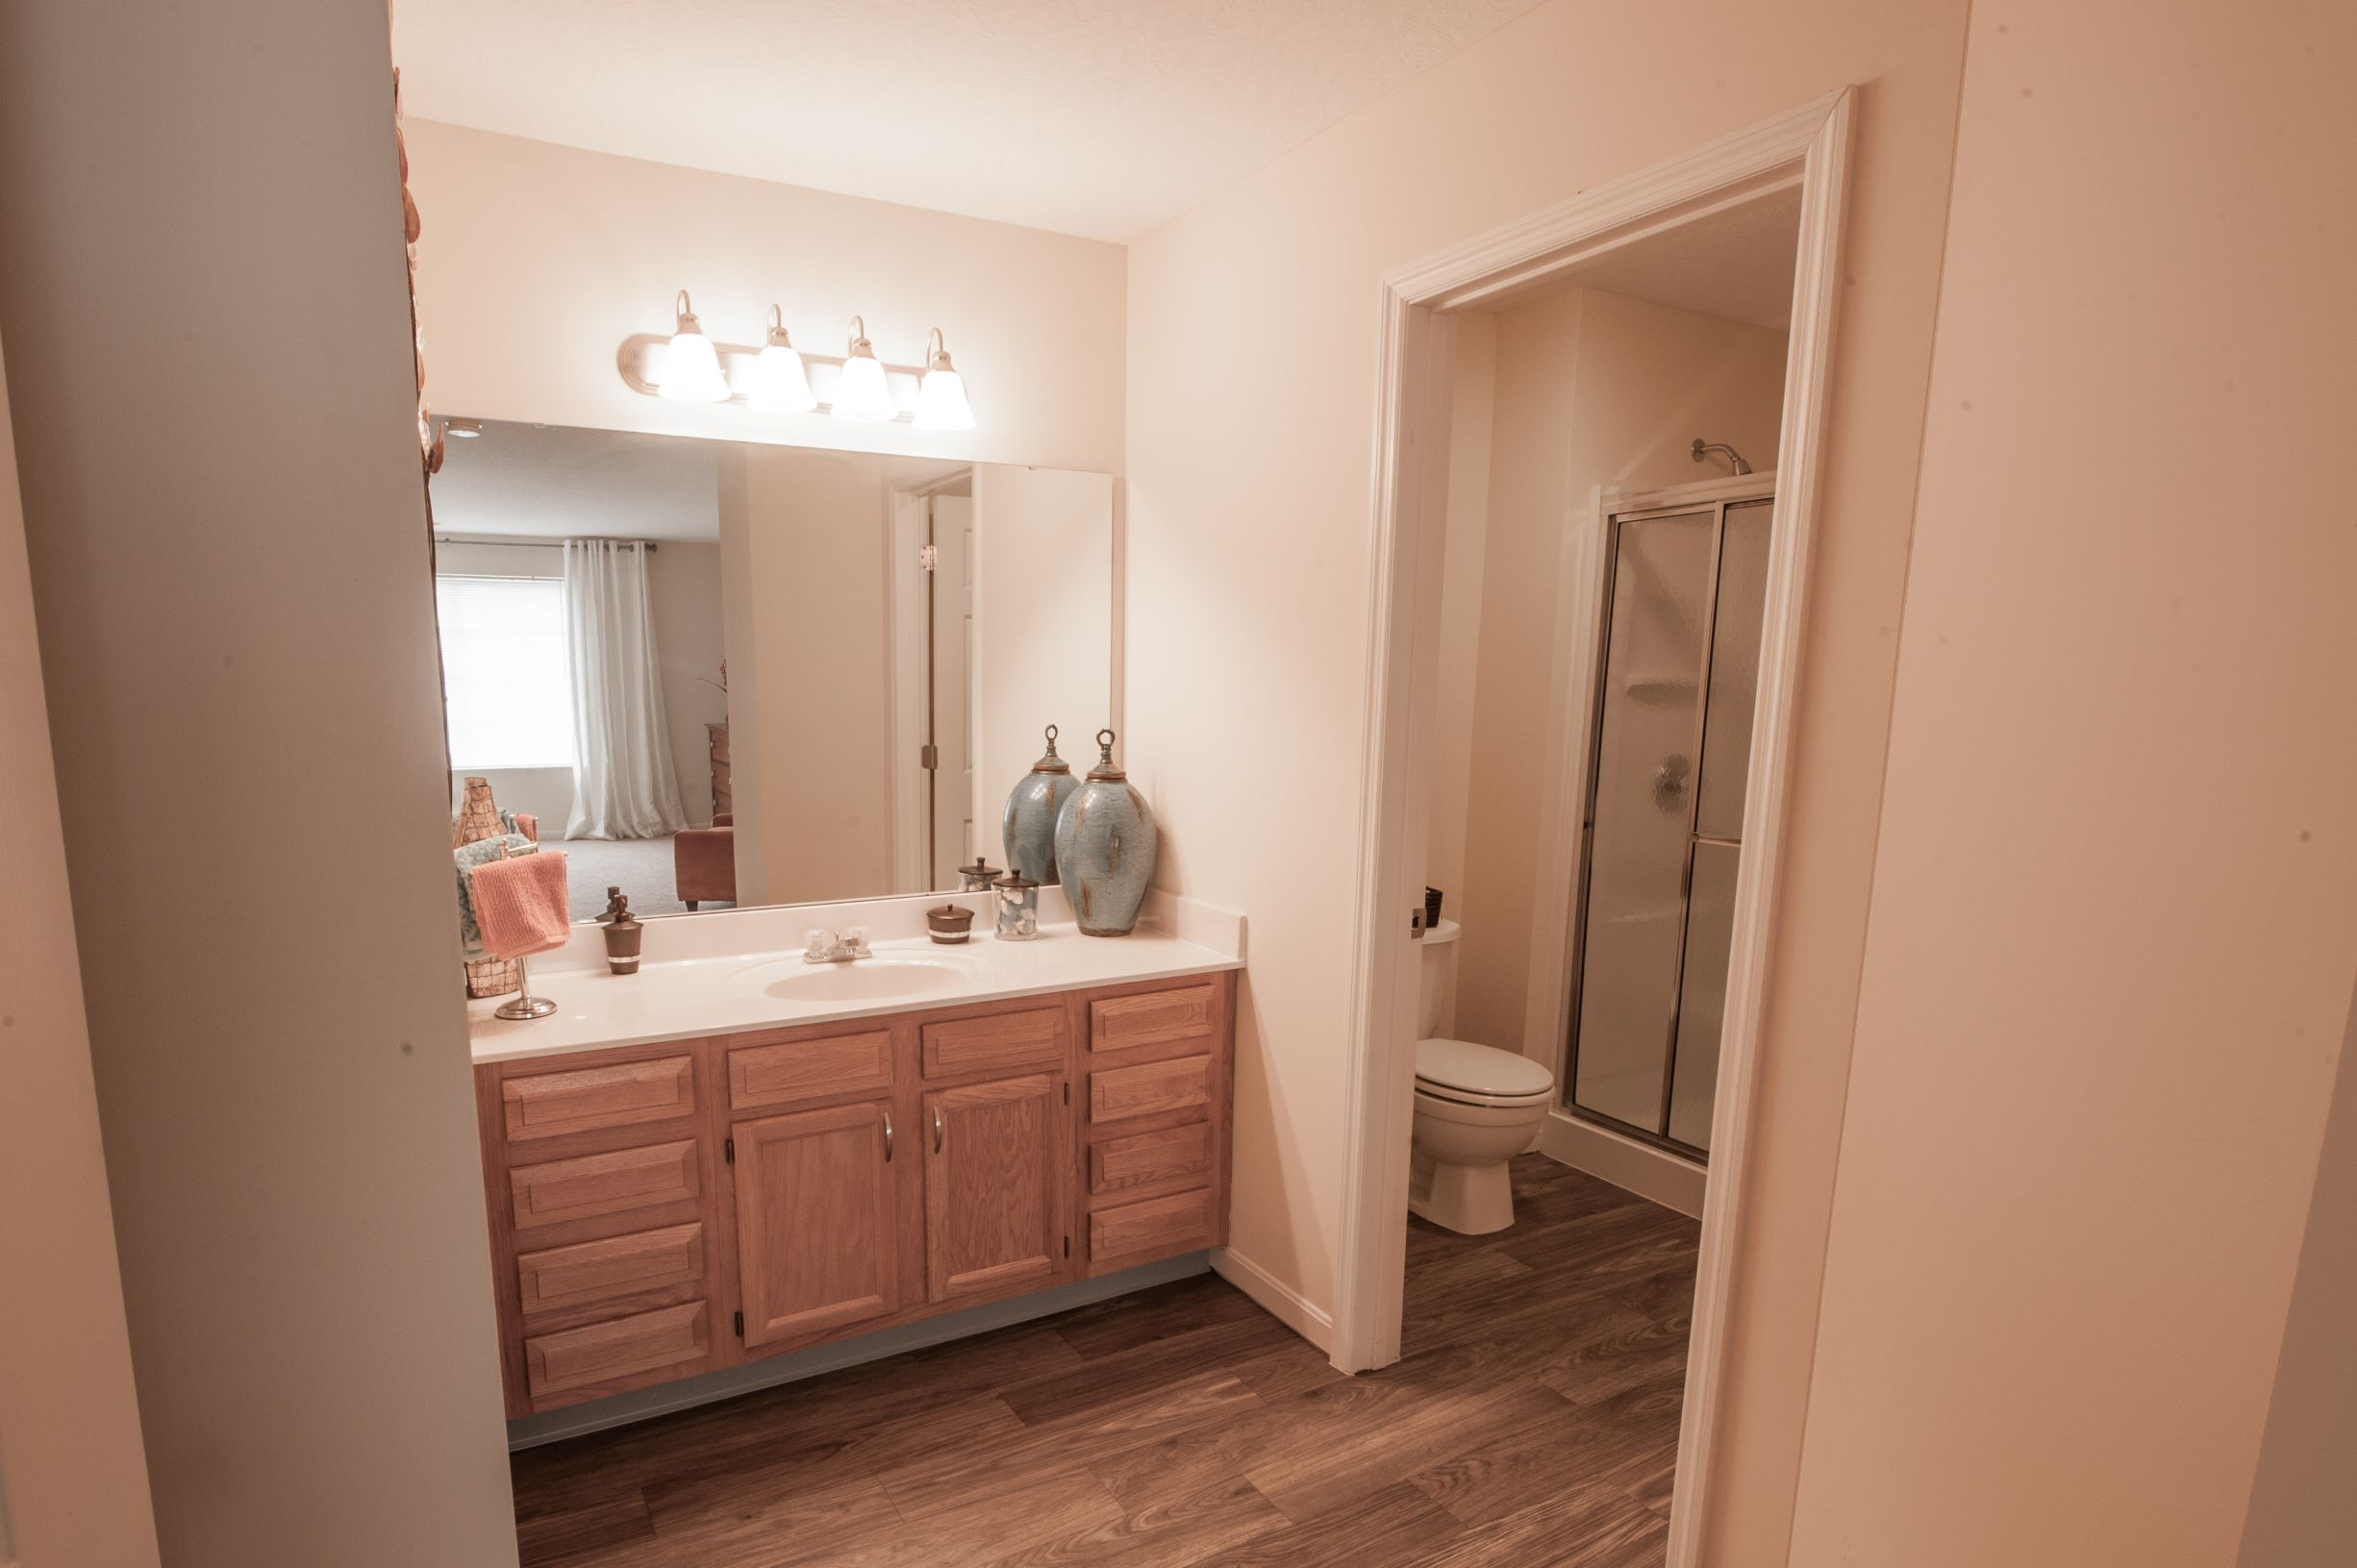 Expansive Bathroom Vanity at Stone Bridge Apartments in Mason, Ohio